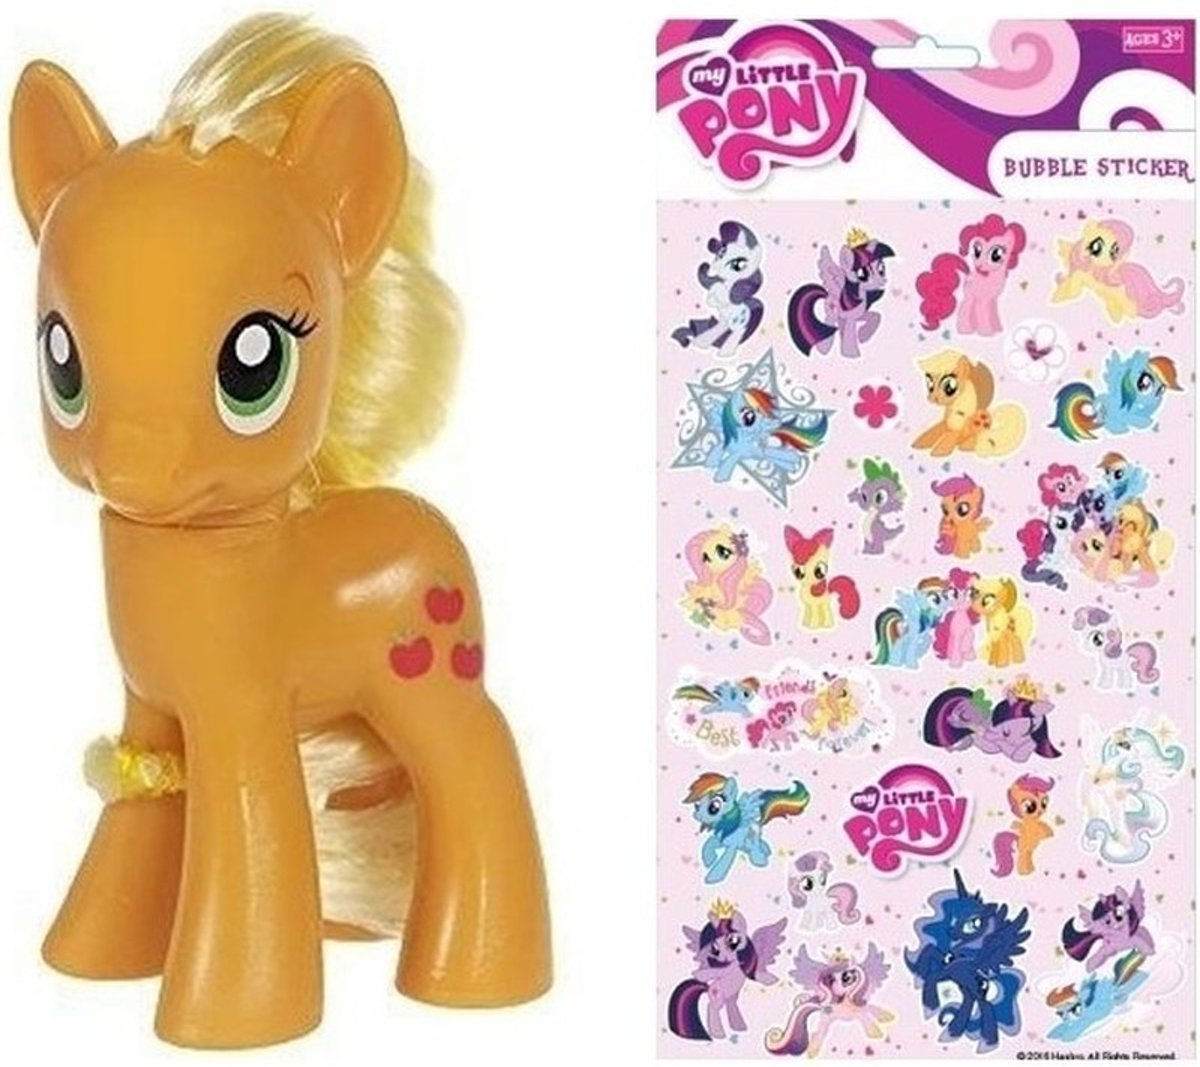 My Little Pony speelfiguur Applejack 8 cm met stickers